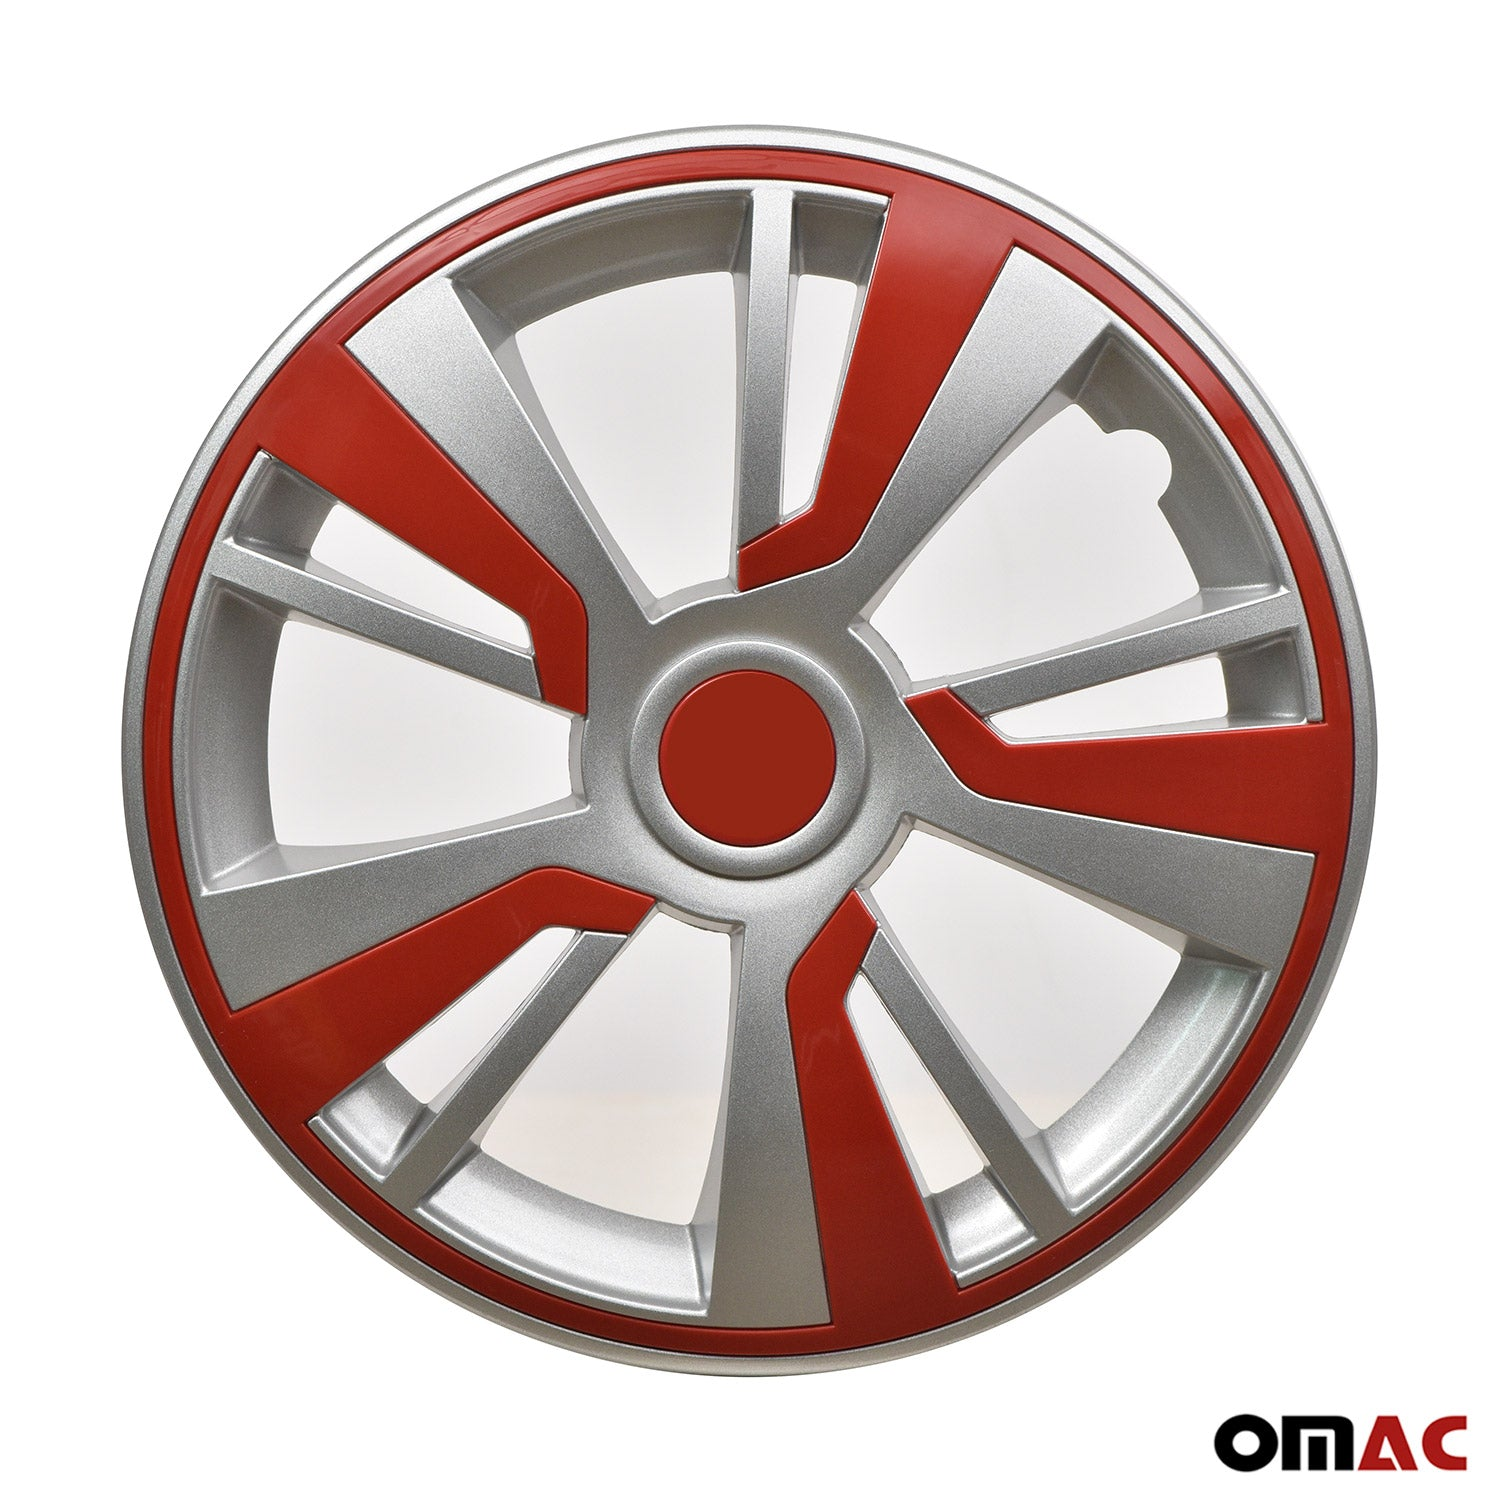 15'' Hubcaps Wheel Rim Cover Grey with Red Insert 4pcs Set